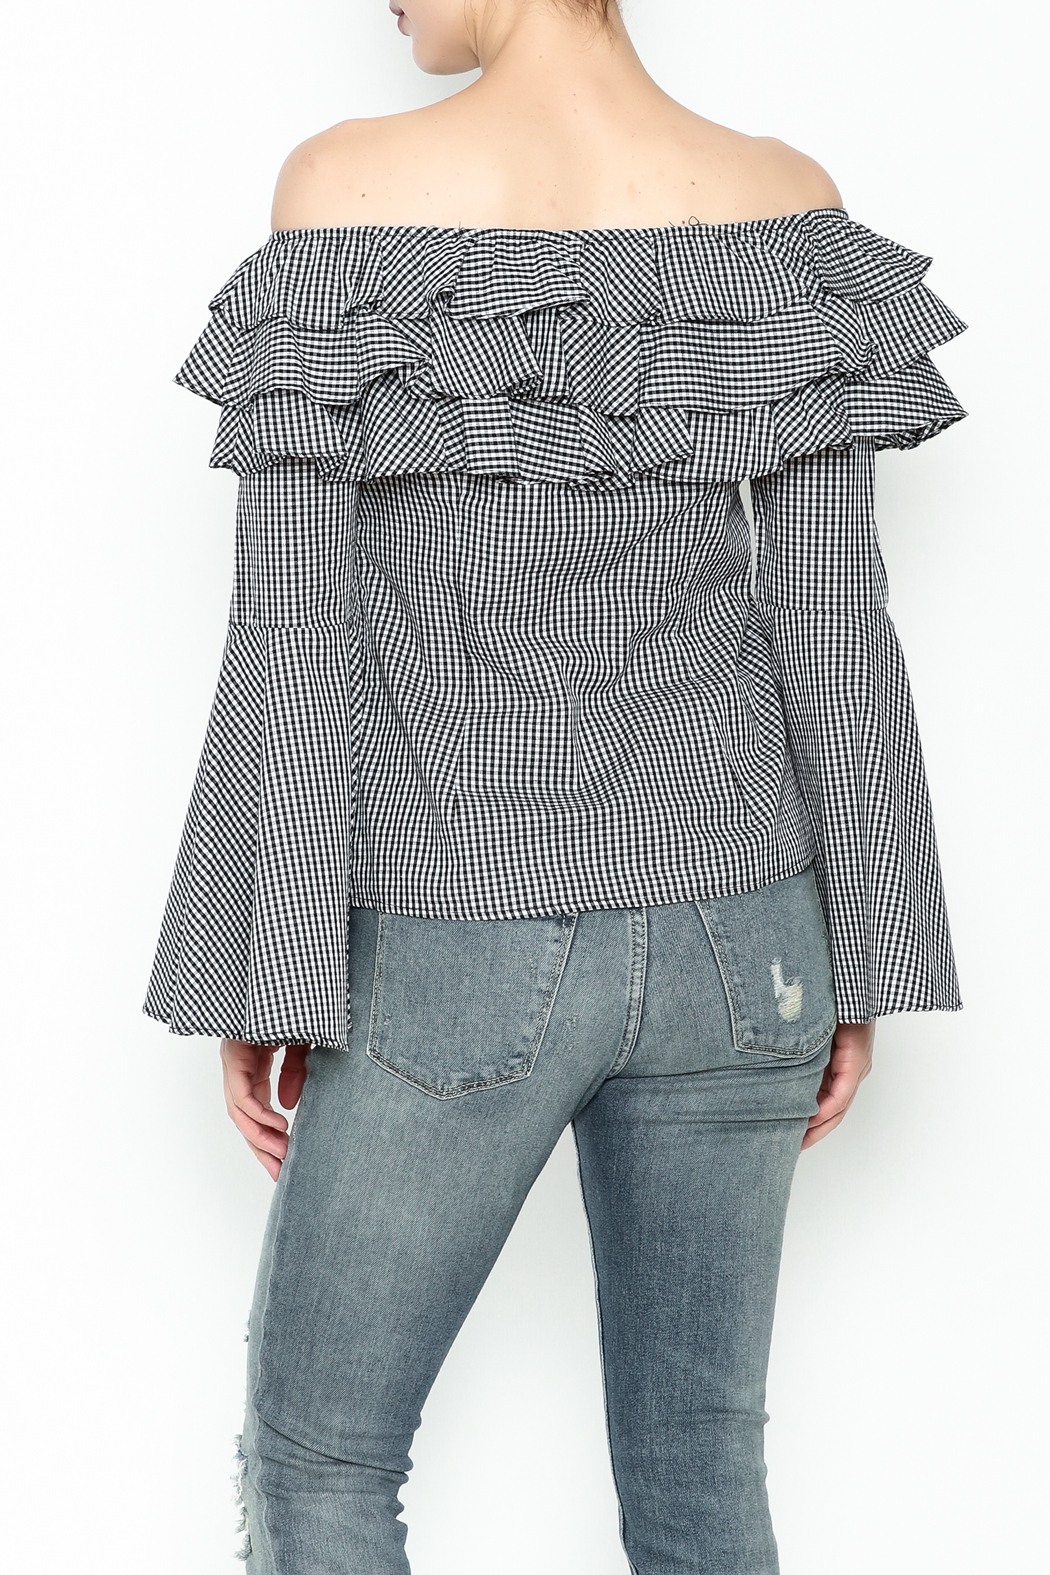 Better Be Ruffle Bell Sleeve Top - Back Cropped Image